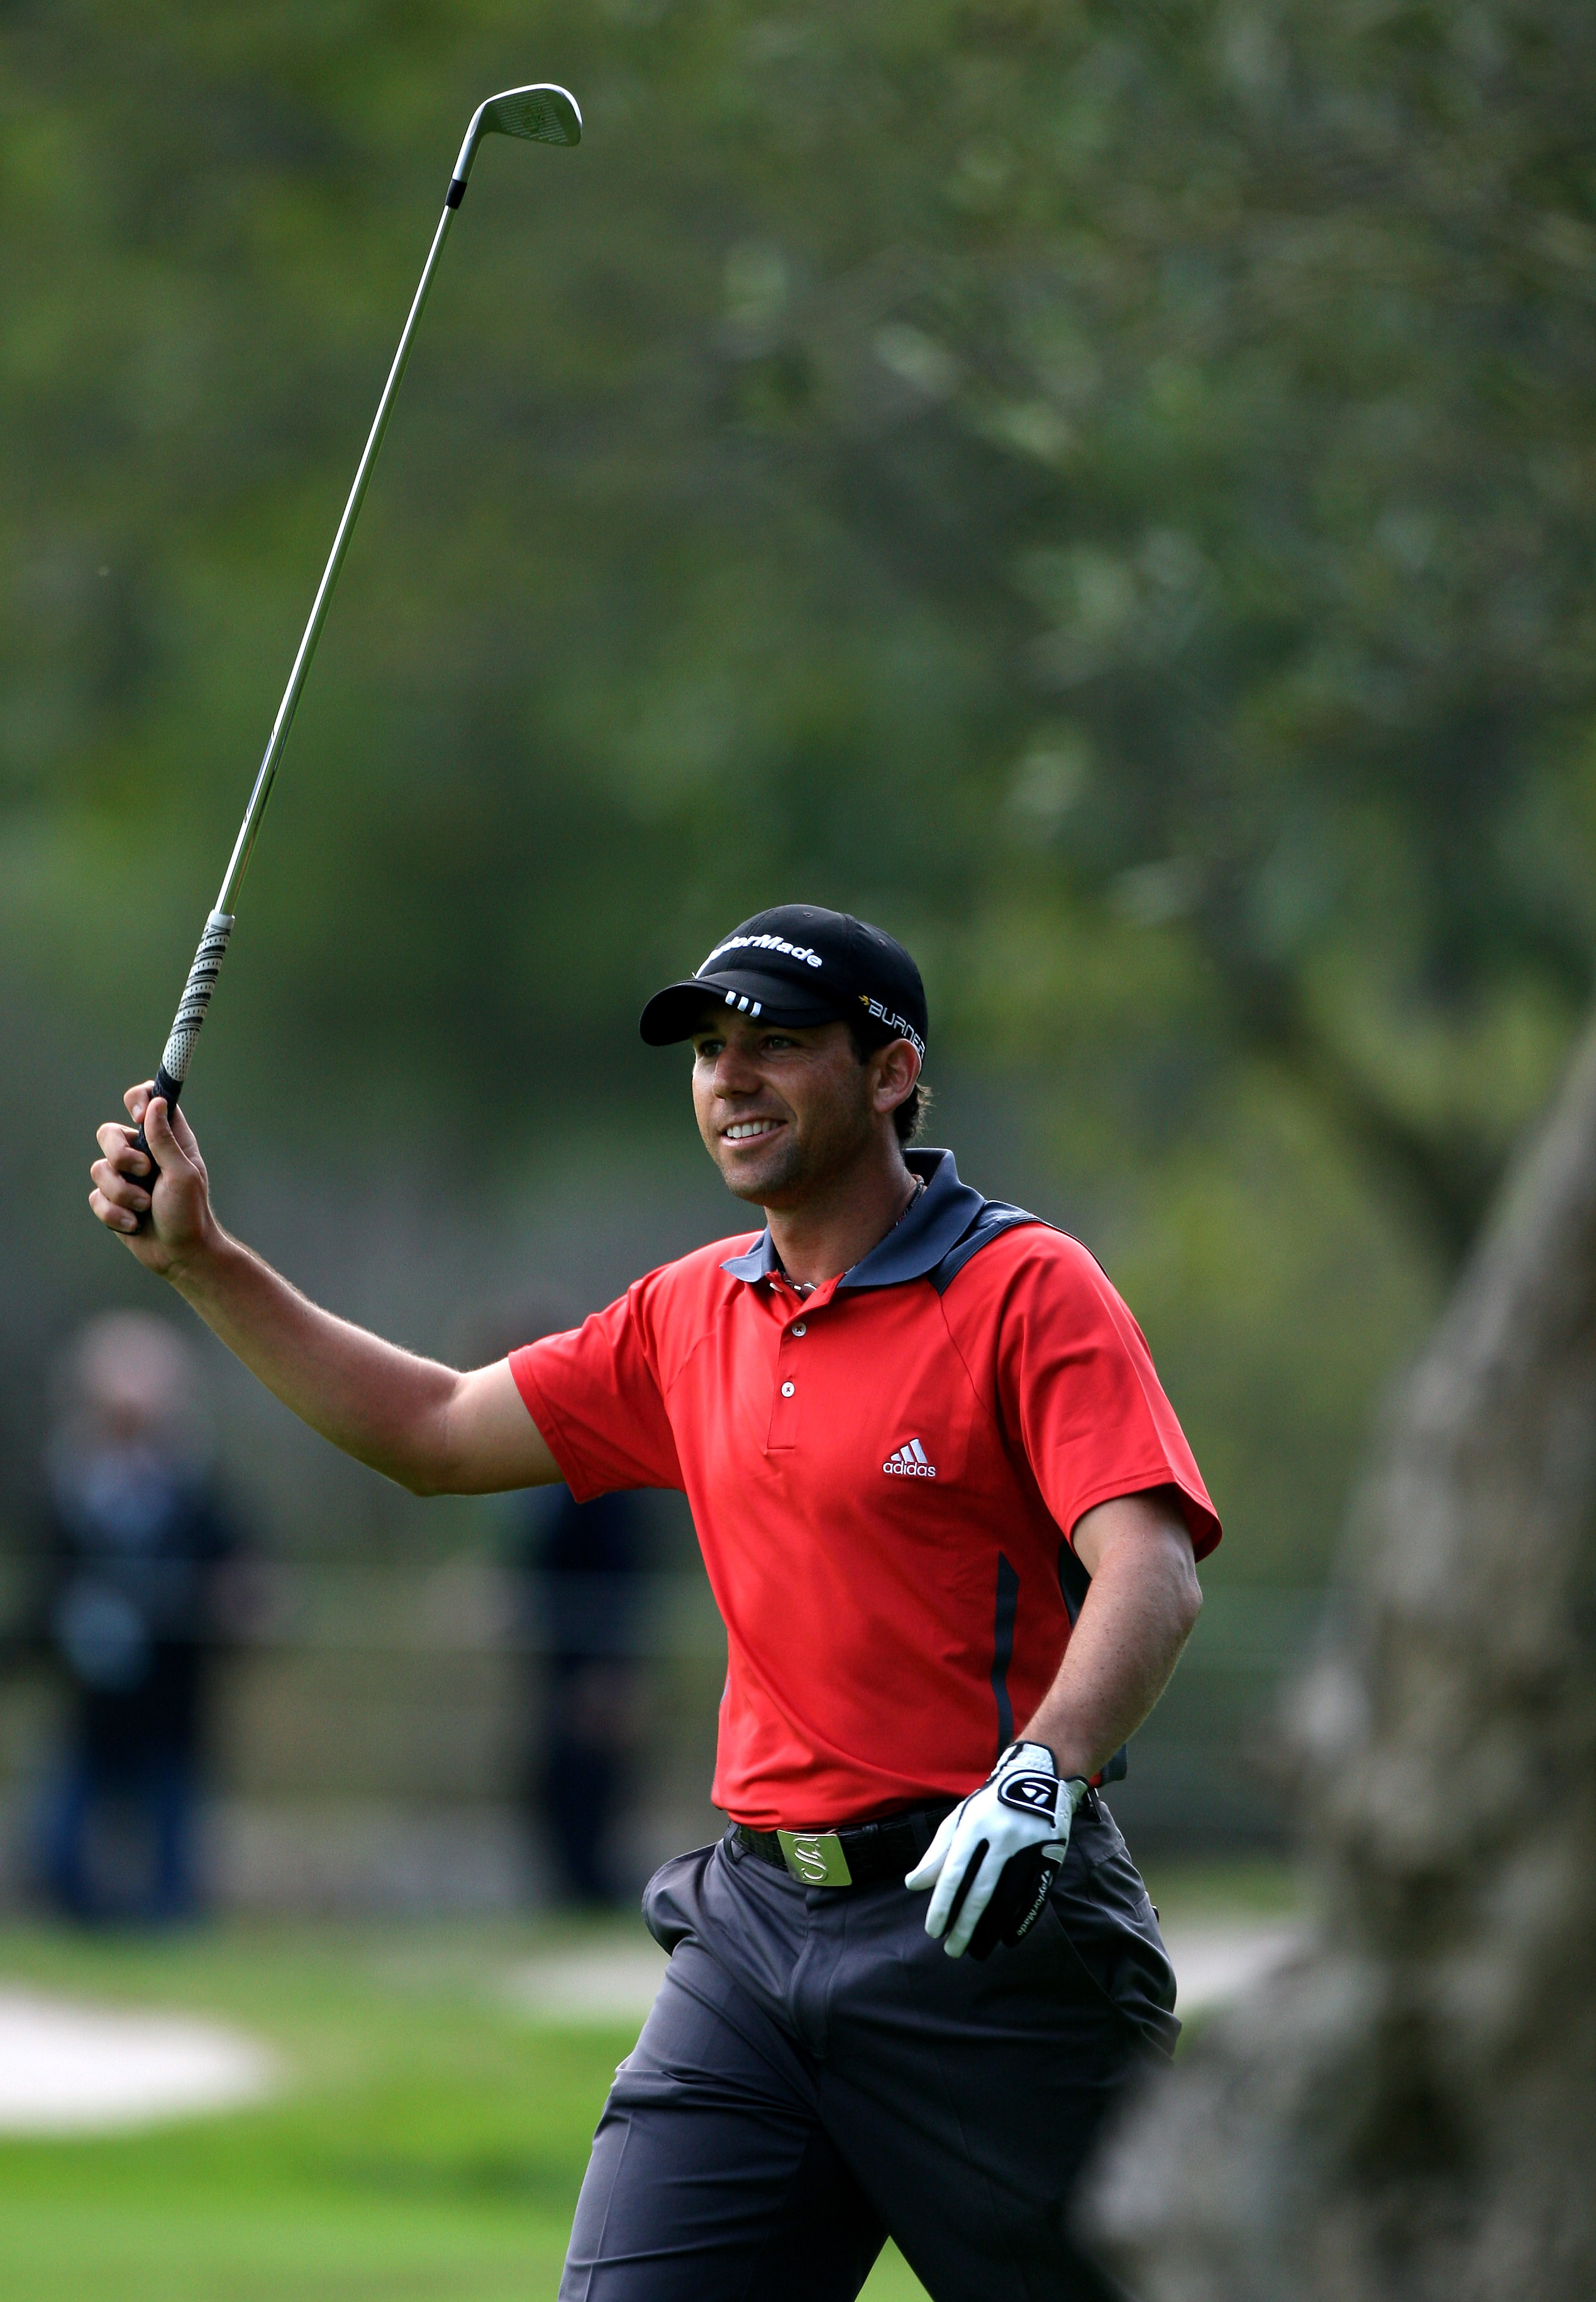 CASTELLO, SPAIN - OCTOBER 24:  Sergio Garcia of Spain looks happy after playing his shot through the trees on the 18th hole during the second round of the Castello Masters Costa Azahar at the Club de Campo del Mediterraneo on October 24, 2008 in Castello,